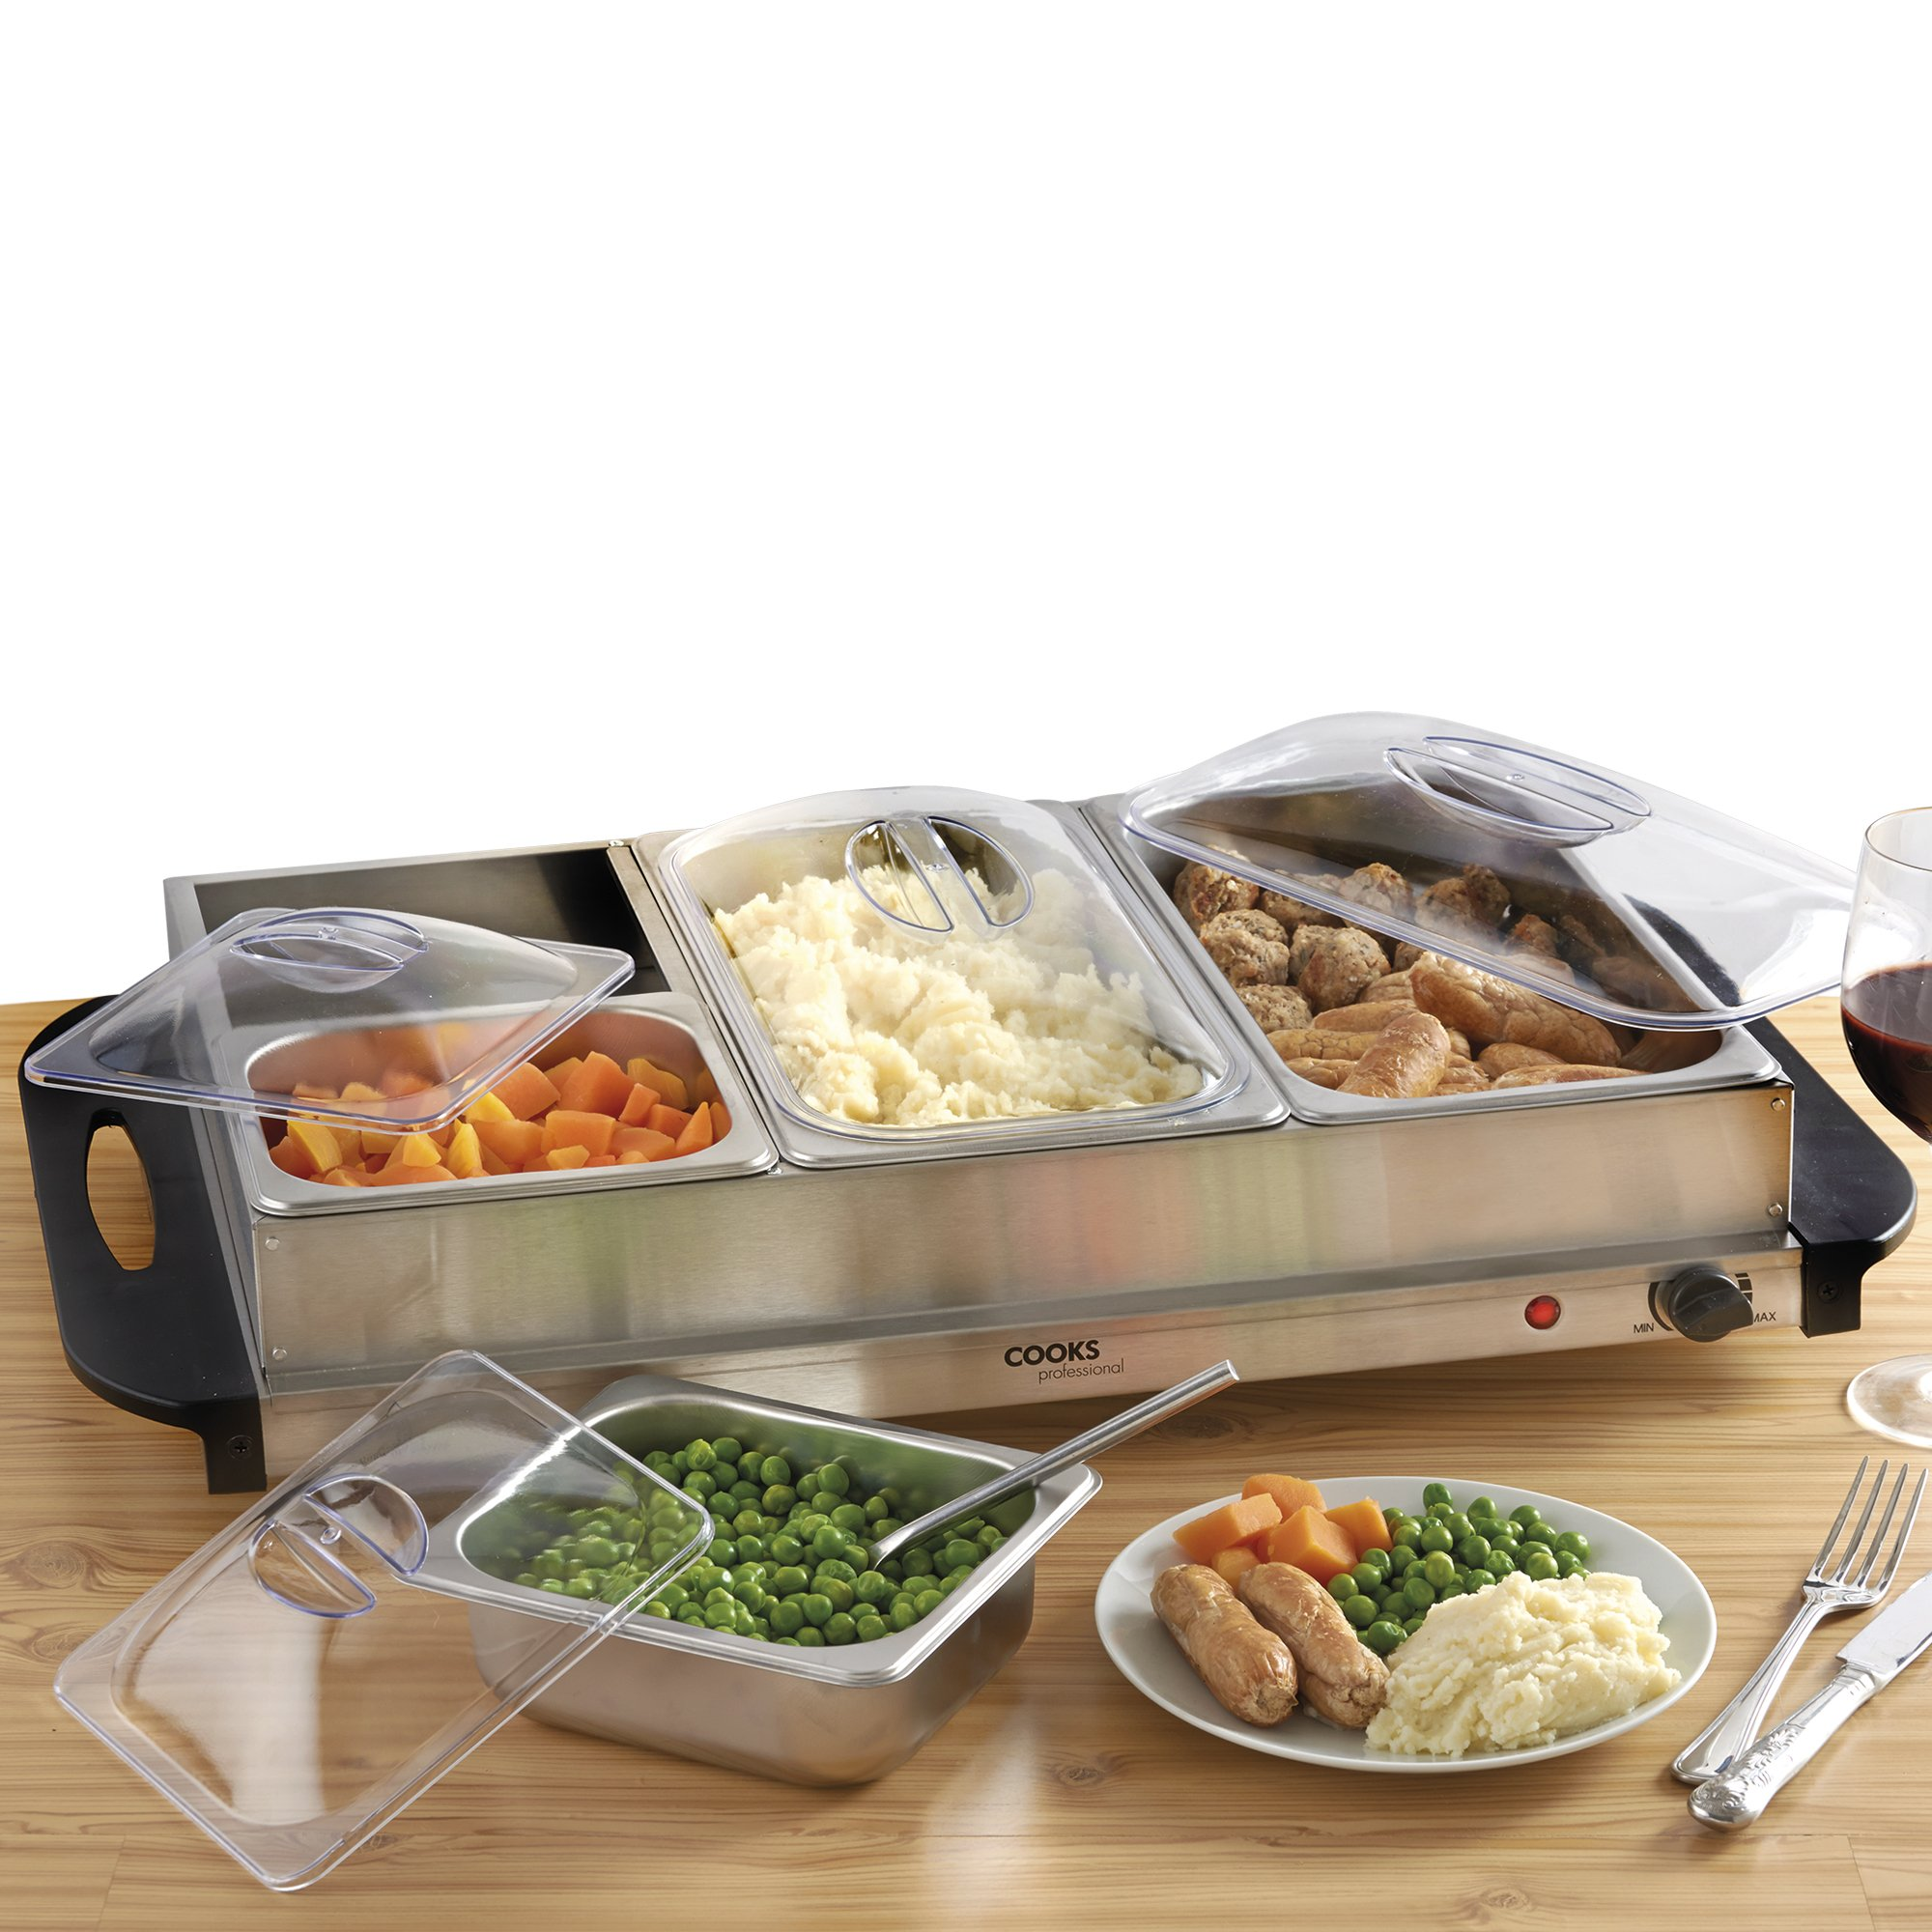 Wondrous Details About Electric Buffet Server Hotplate Large Food Warmer Hostess W 4 Tray Section Lids Interior Design Ideas Apansoteloinfo